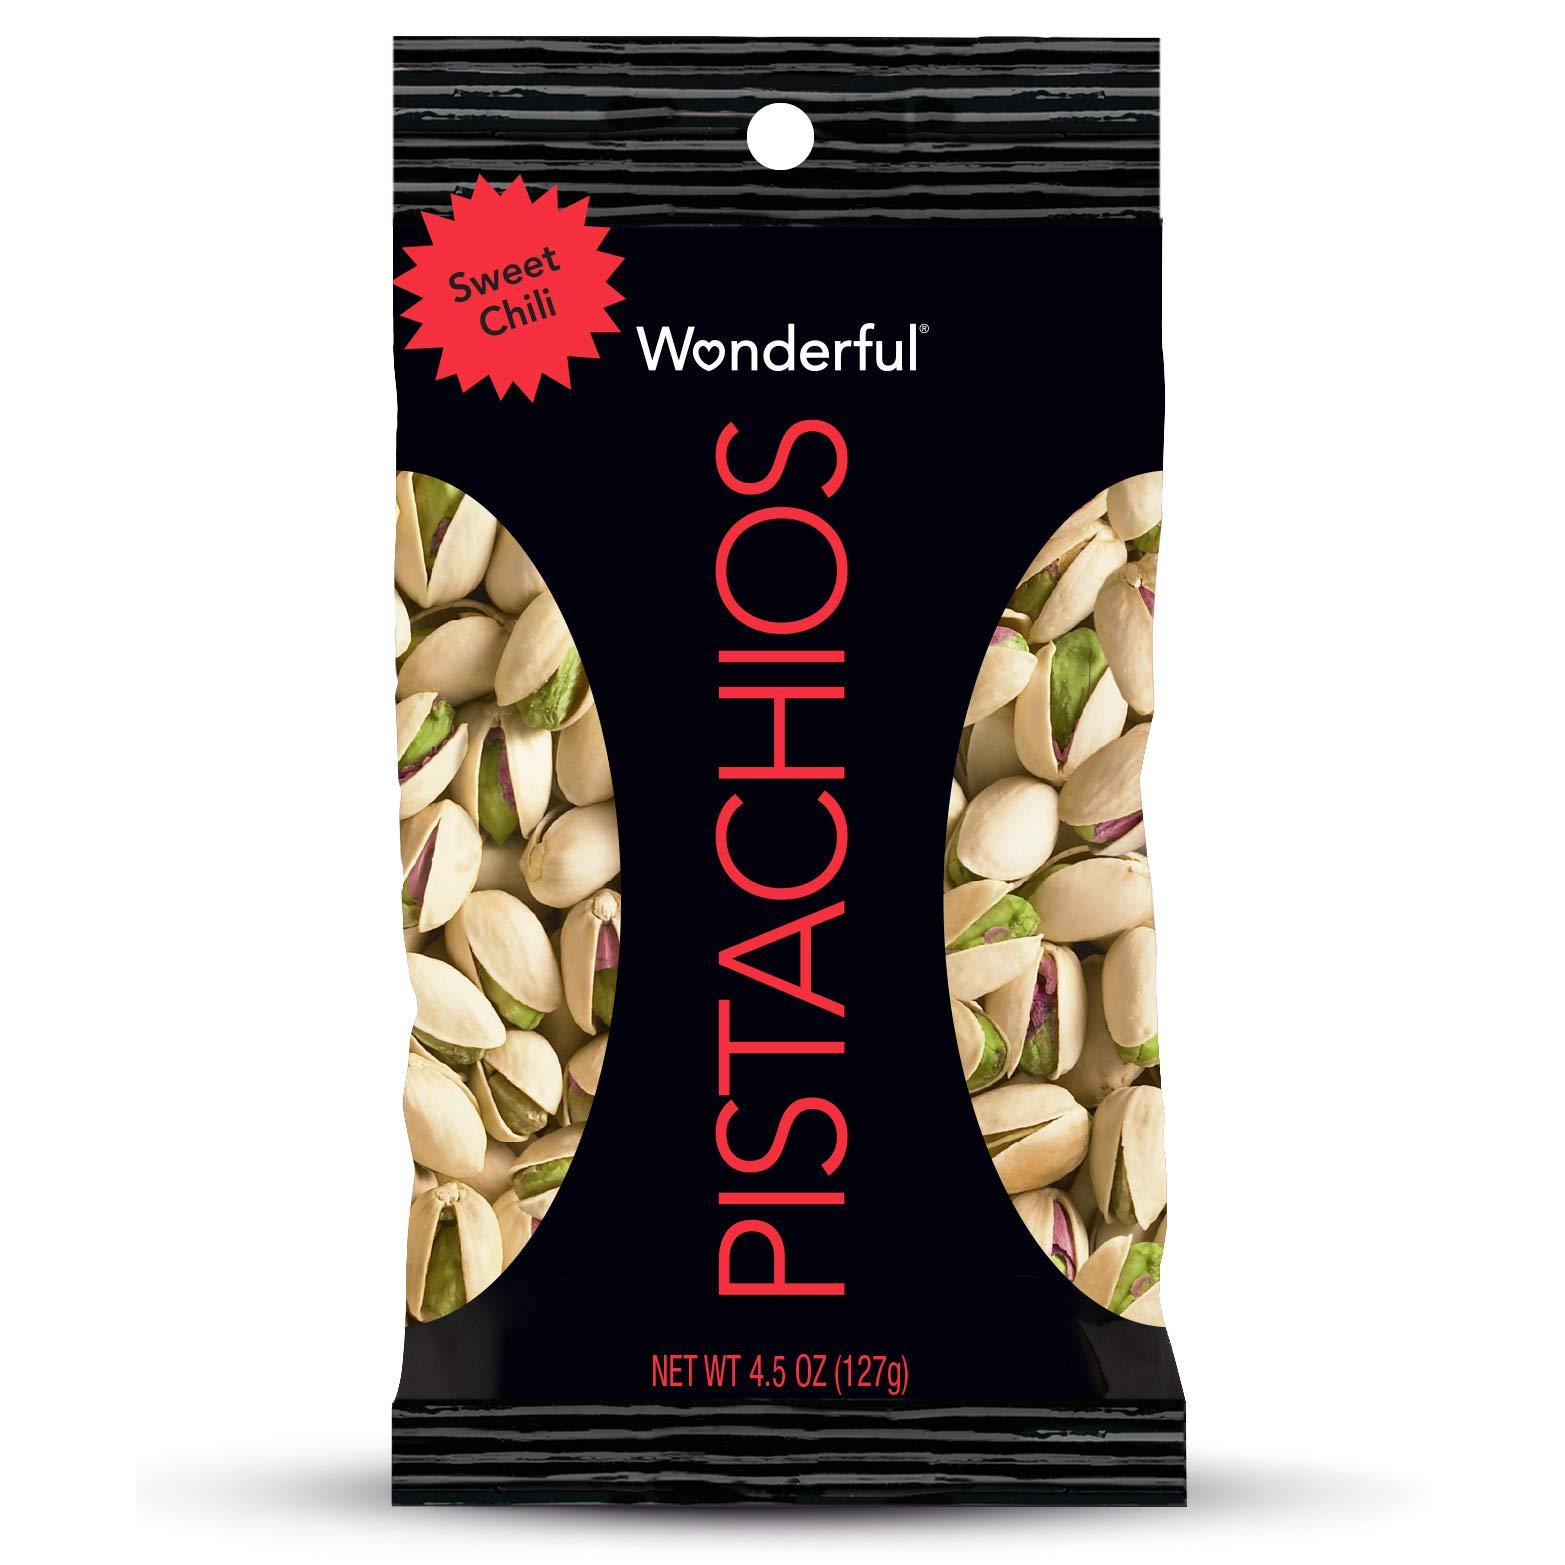 Wonderful Pistachios, Sweet Chili Flavored, 4.5 Ounce by Wonderful Pistachios & Almonds